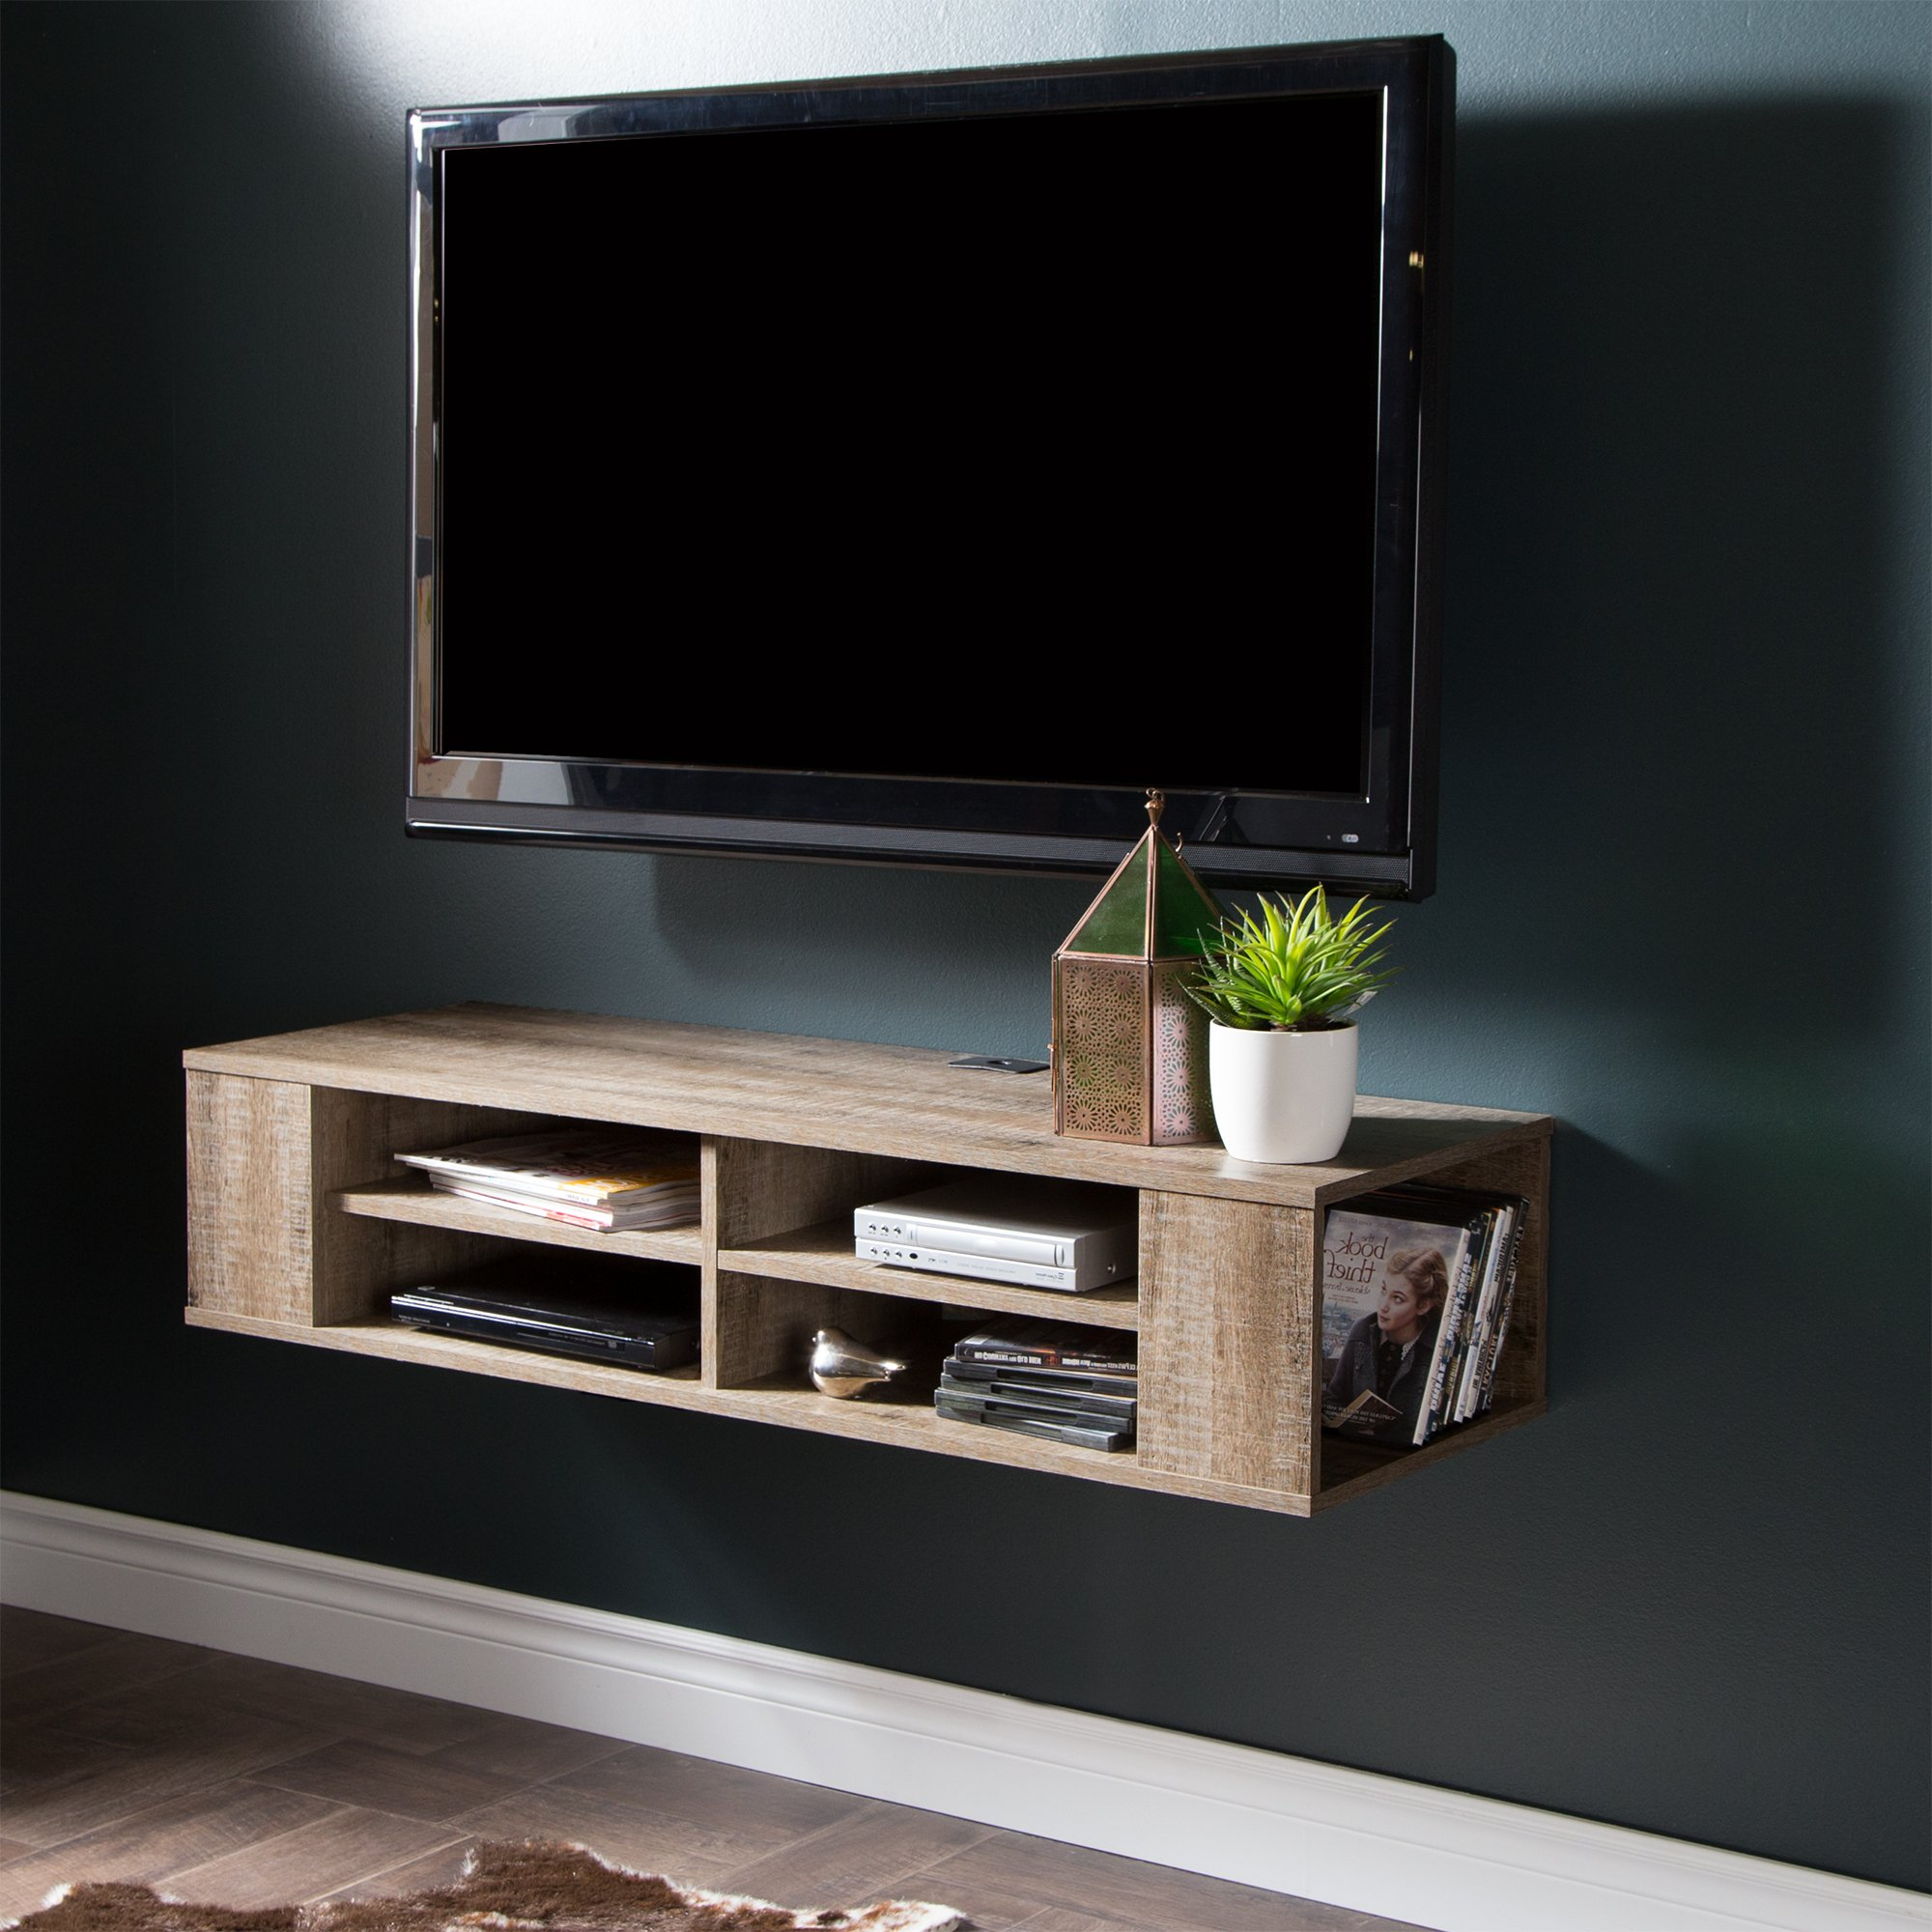 "City Life Wall Mounted Media Console - 48"" Wide - Extra Storage - Weathered Oak - By South Shore"